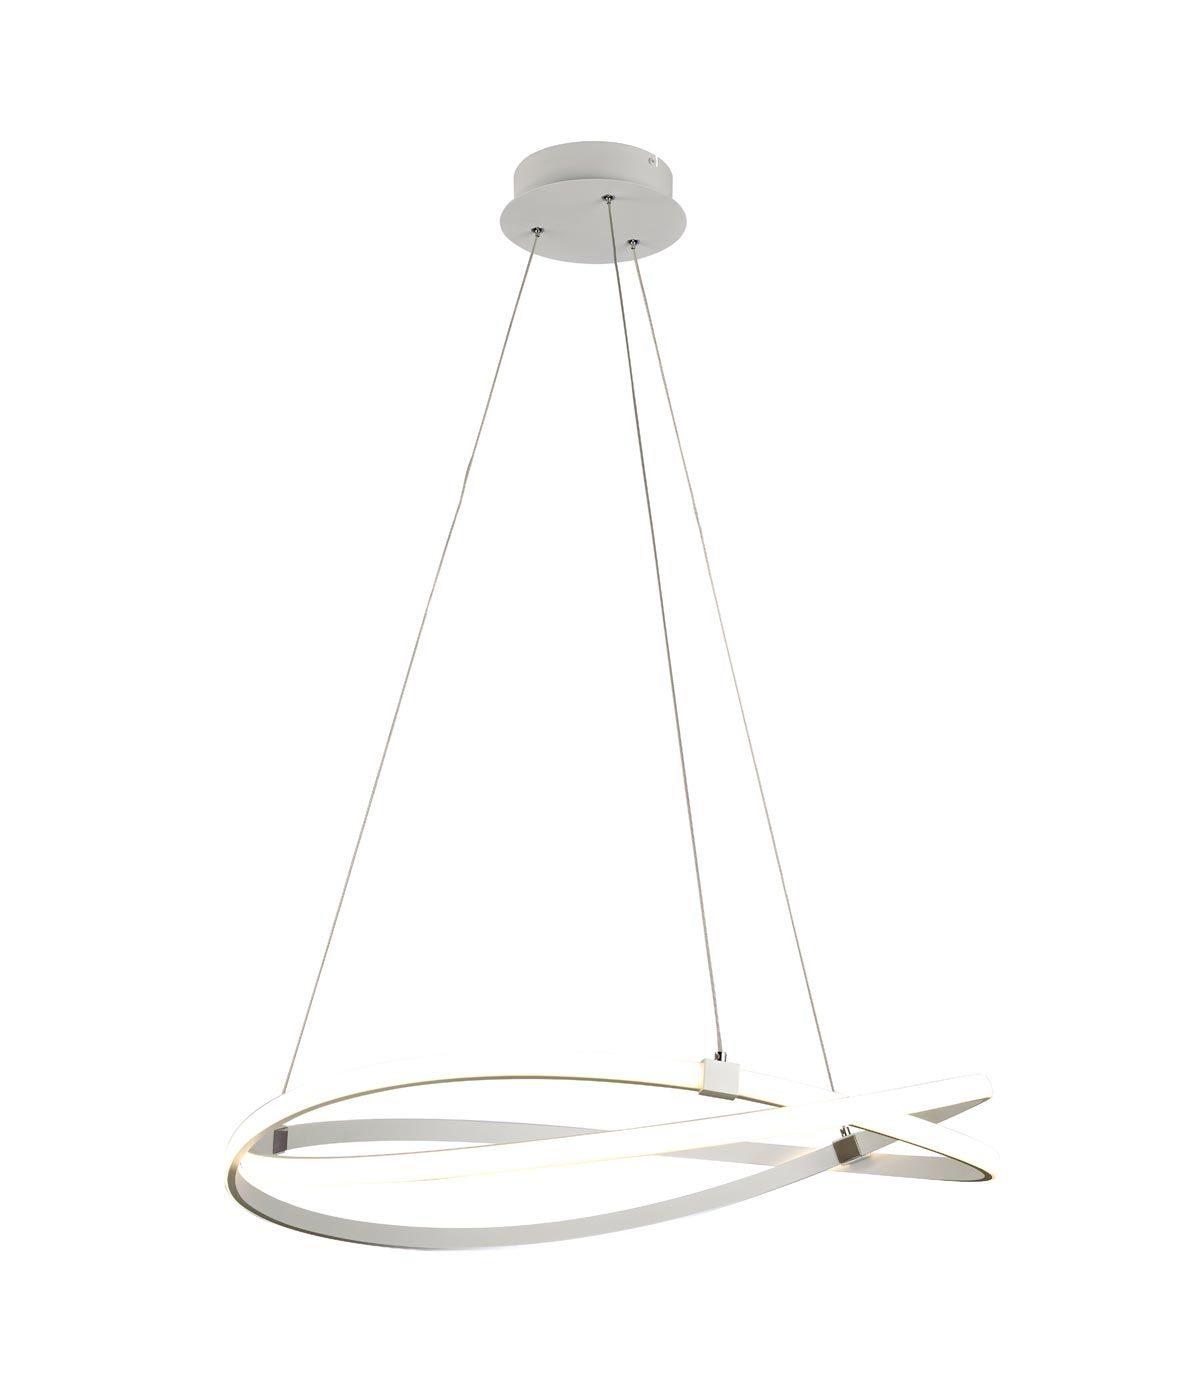 Lámparas dimmable INFINITY blanca